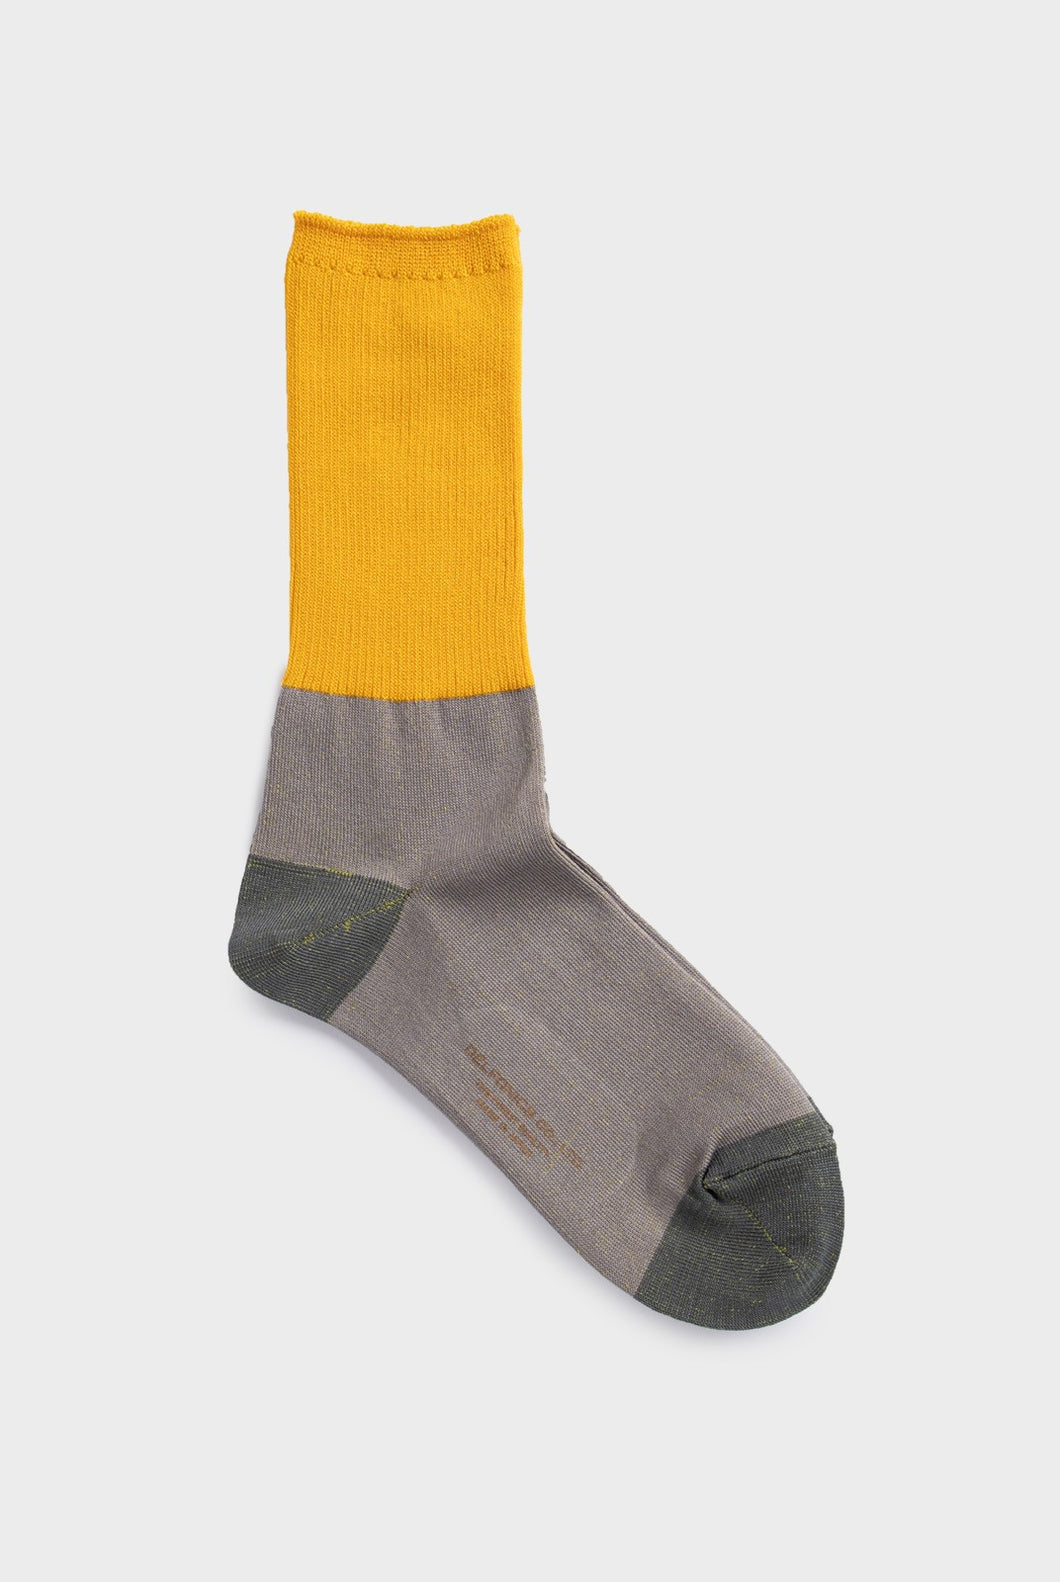 Delfonics - Bicolore Collection Socks - Large - Yellow & Light Grey